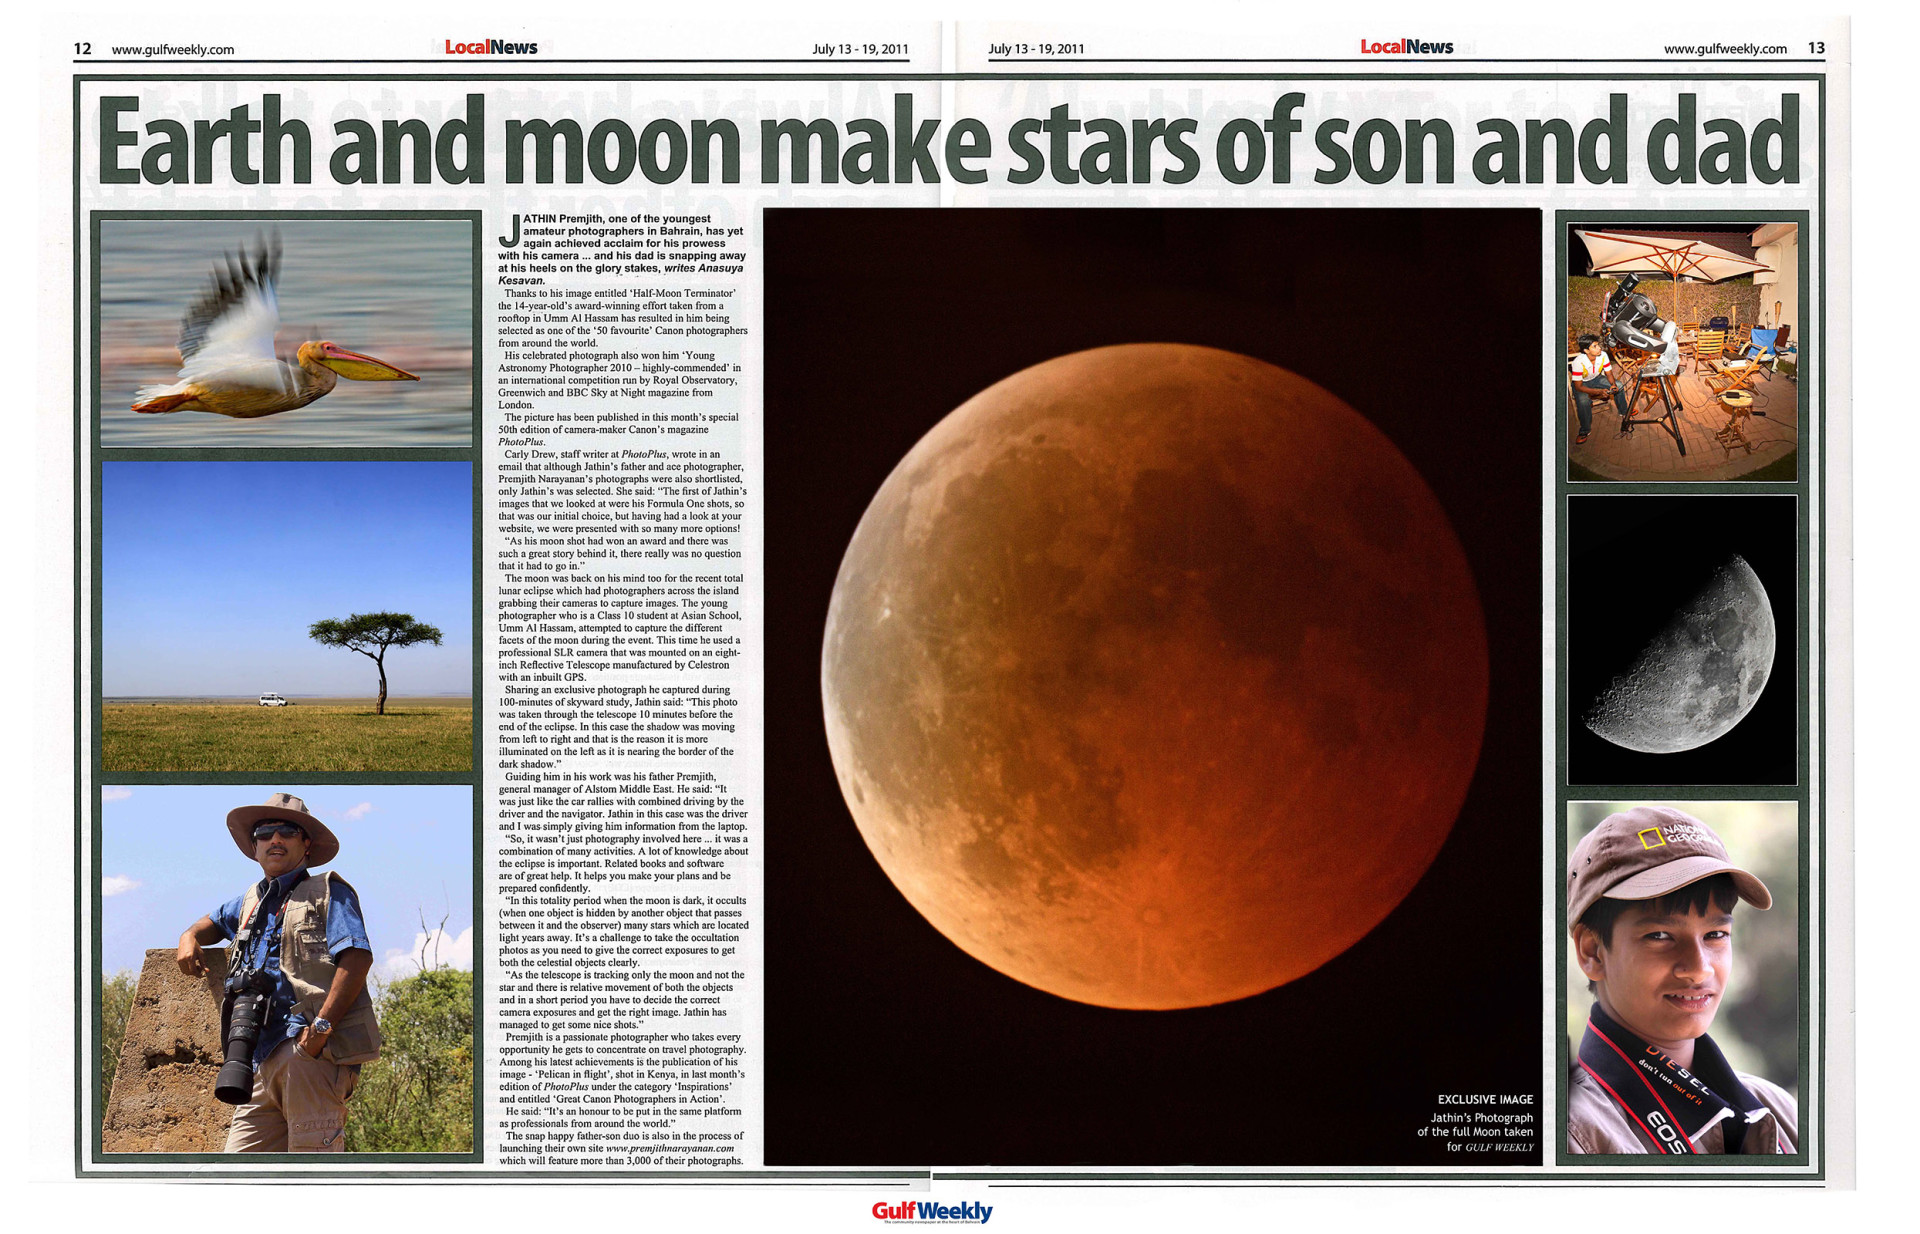 Gulf Weekly Centre-Spread Article